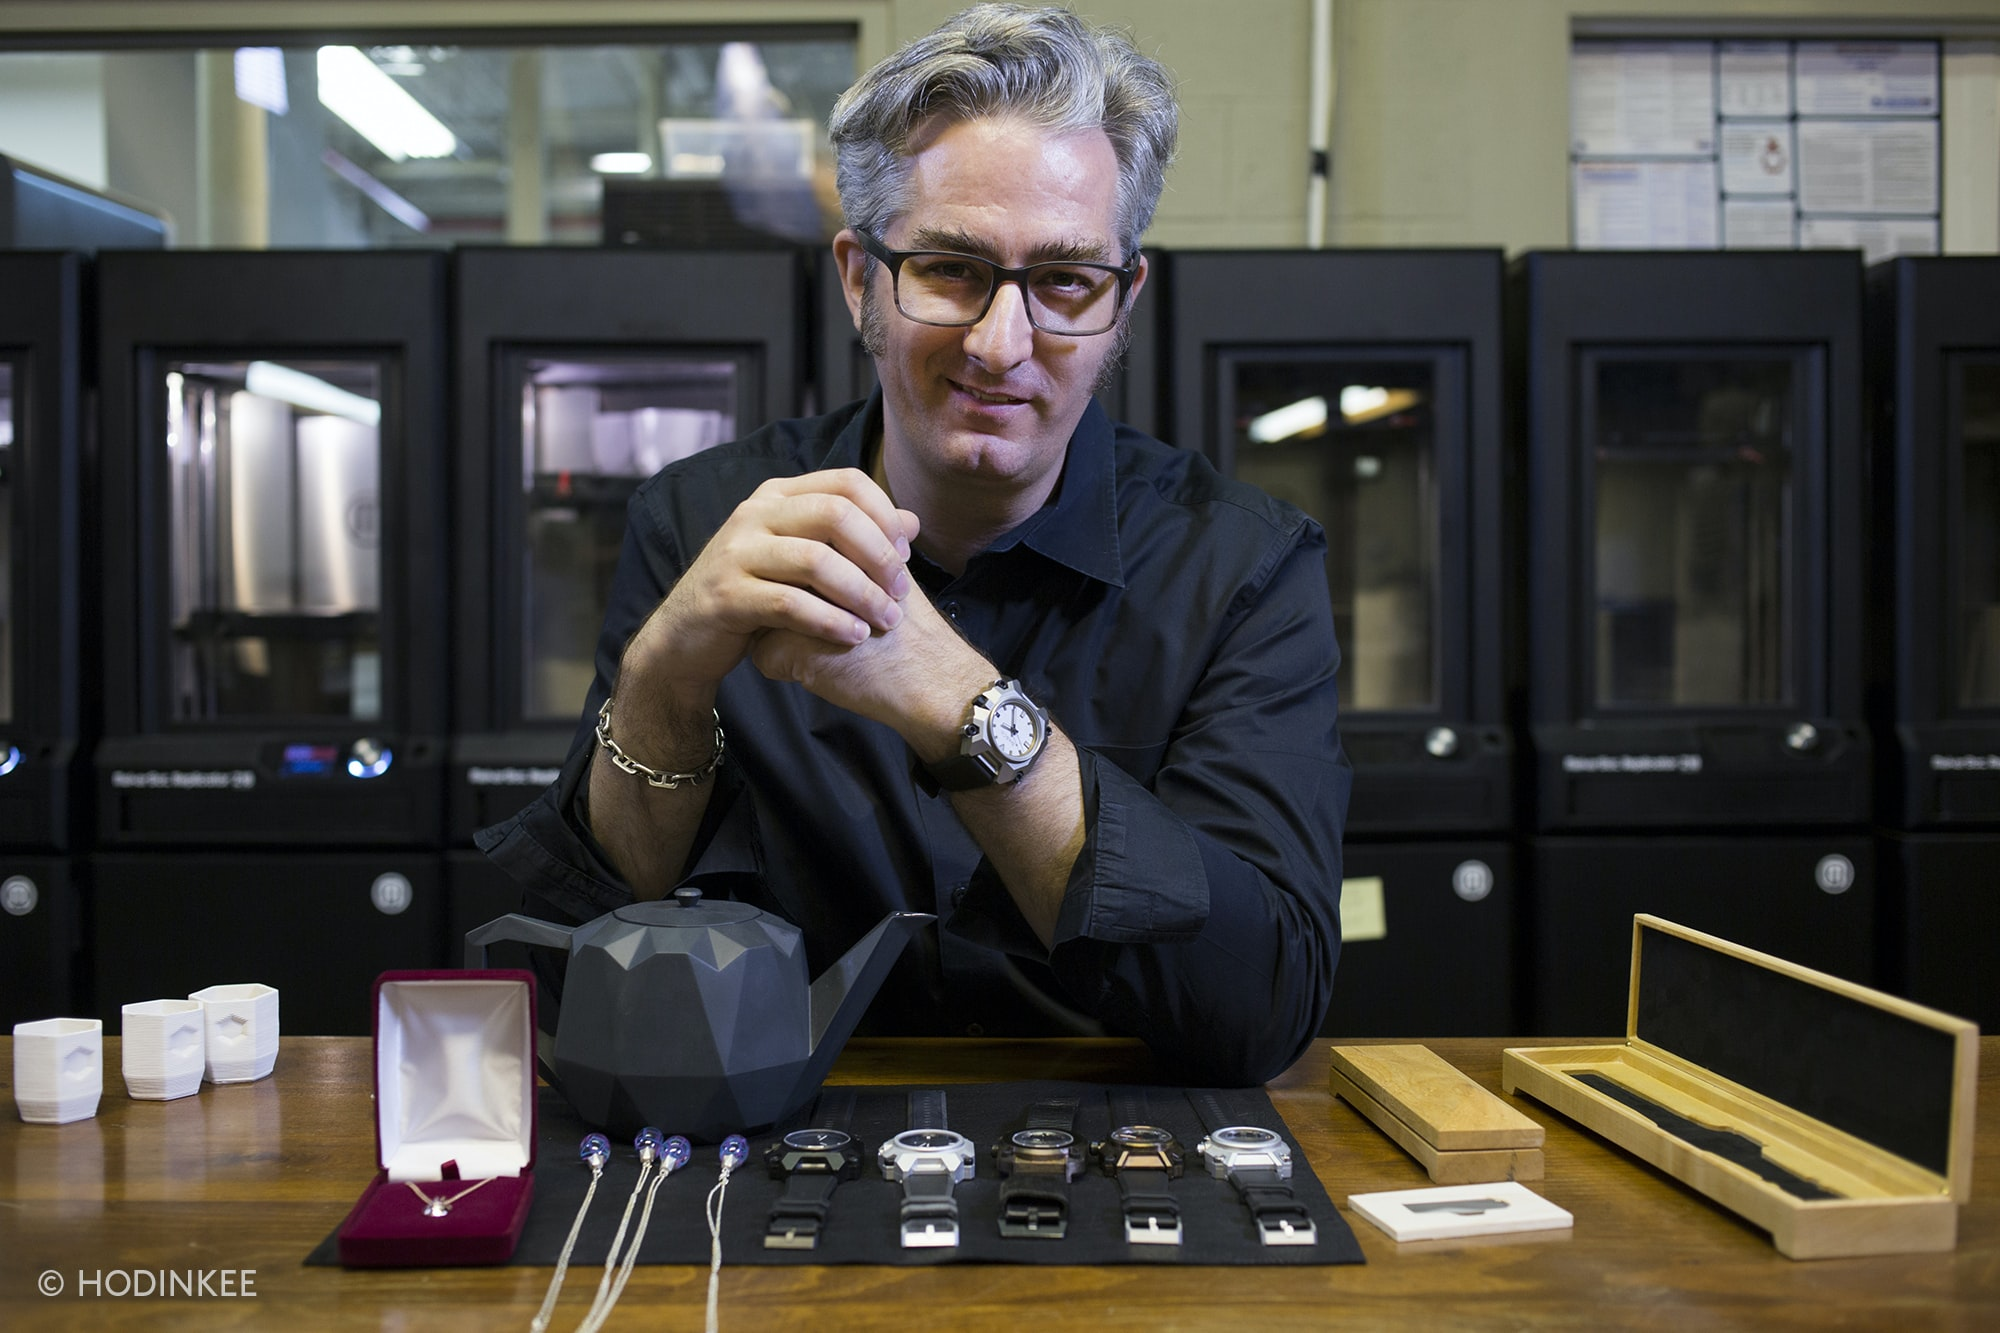 MakerBot Founder Bre Pettis Launches A Watch Company Based ...